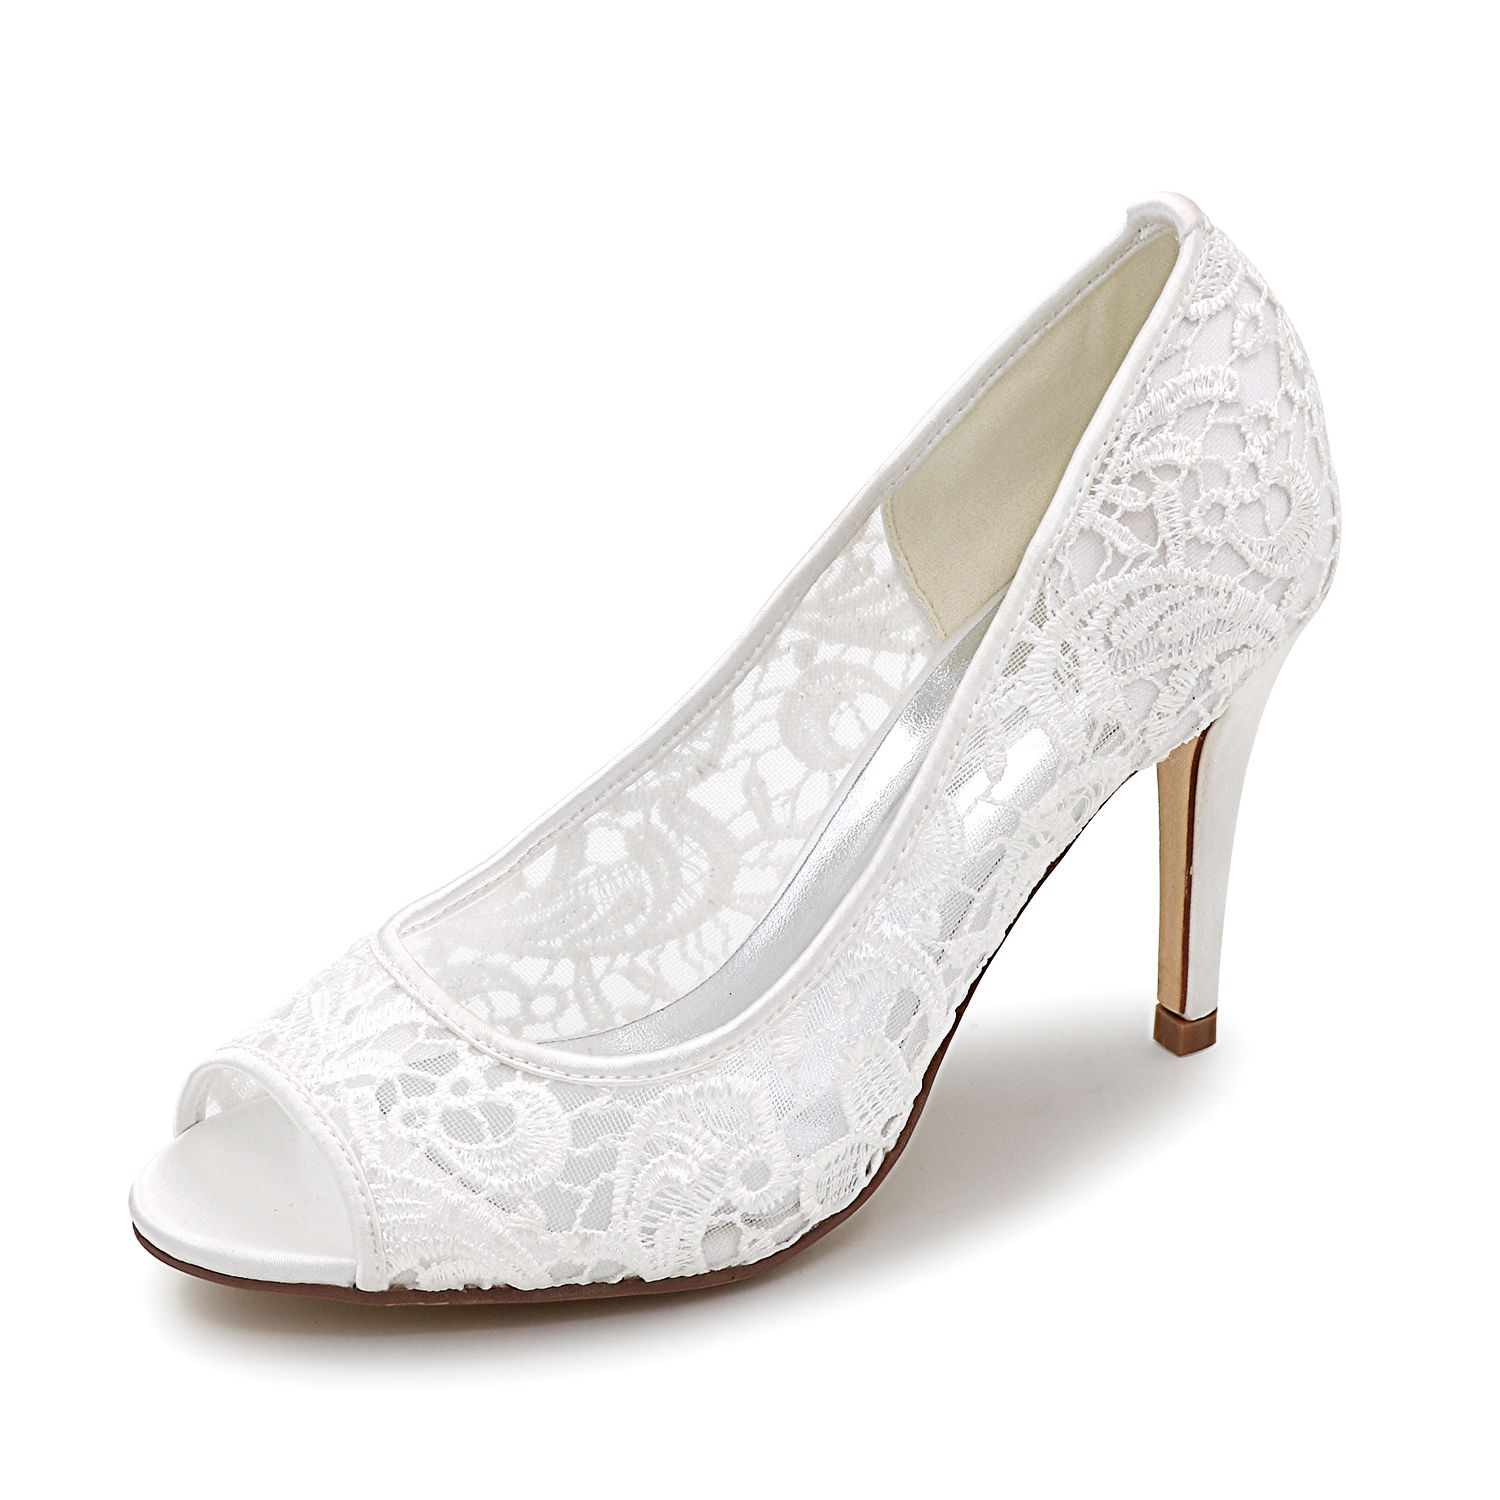 bba97cbe850a1 Creativesugar open toe lace bridal wedding shoes , 3 inches heel ...